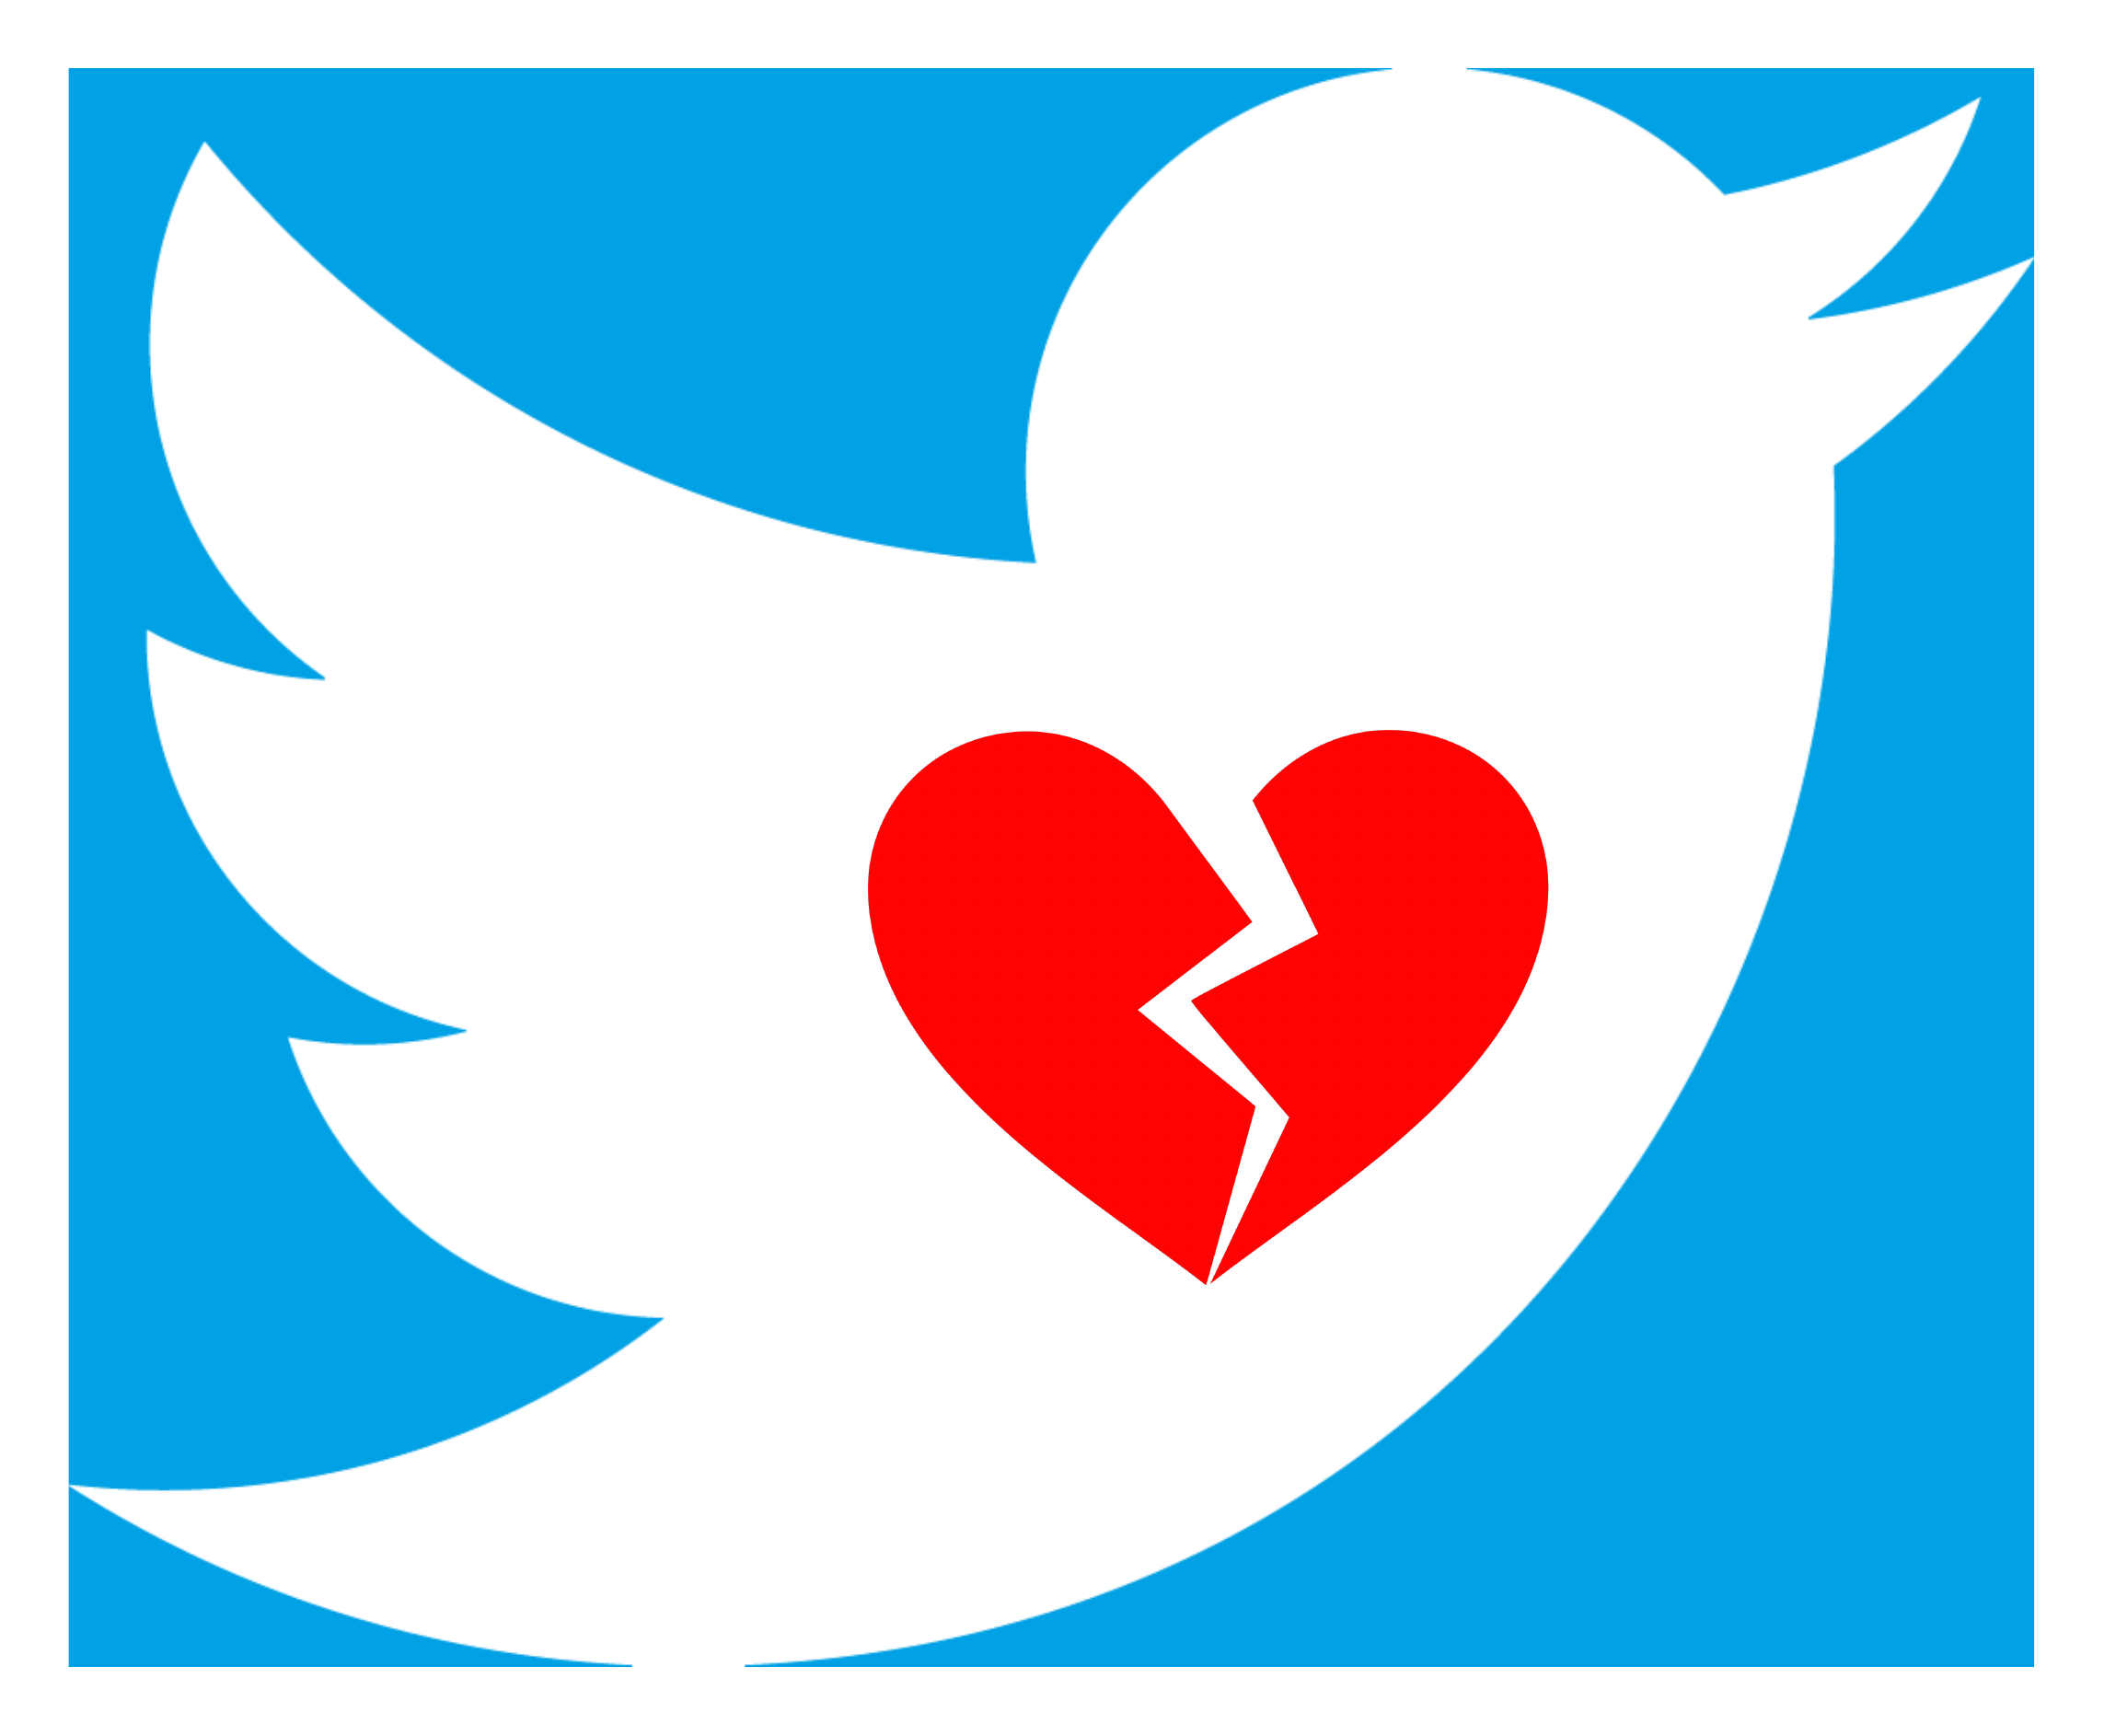 Twitter: A Love-Hate Relationship